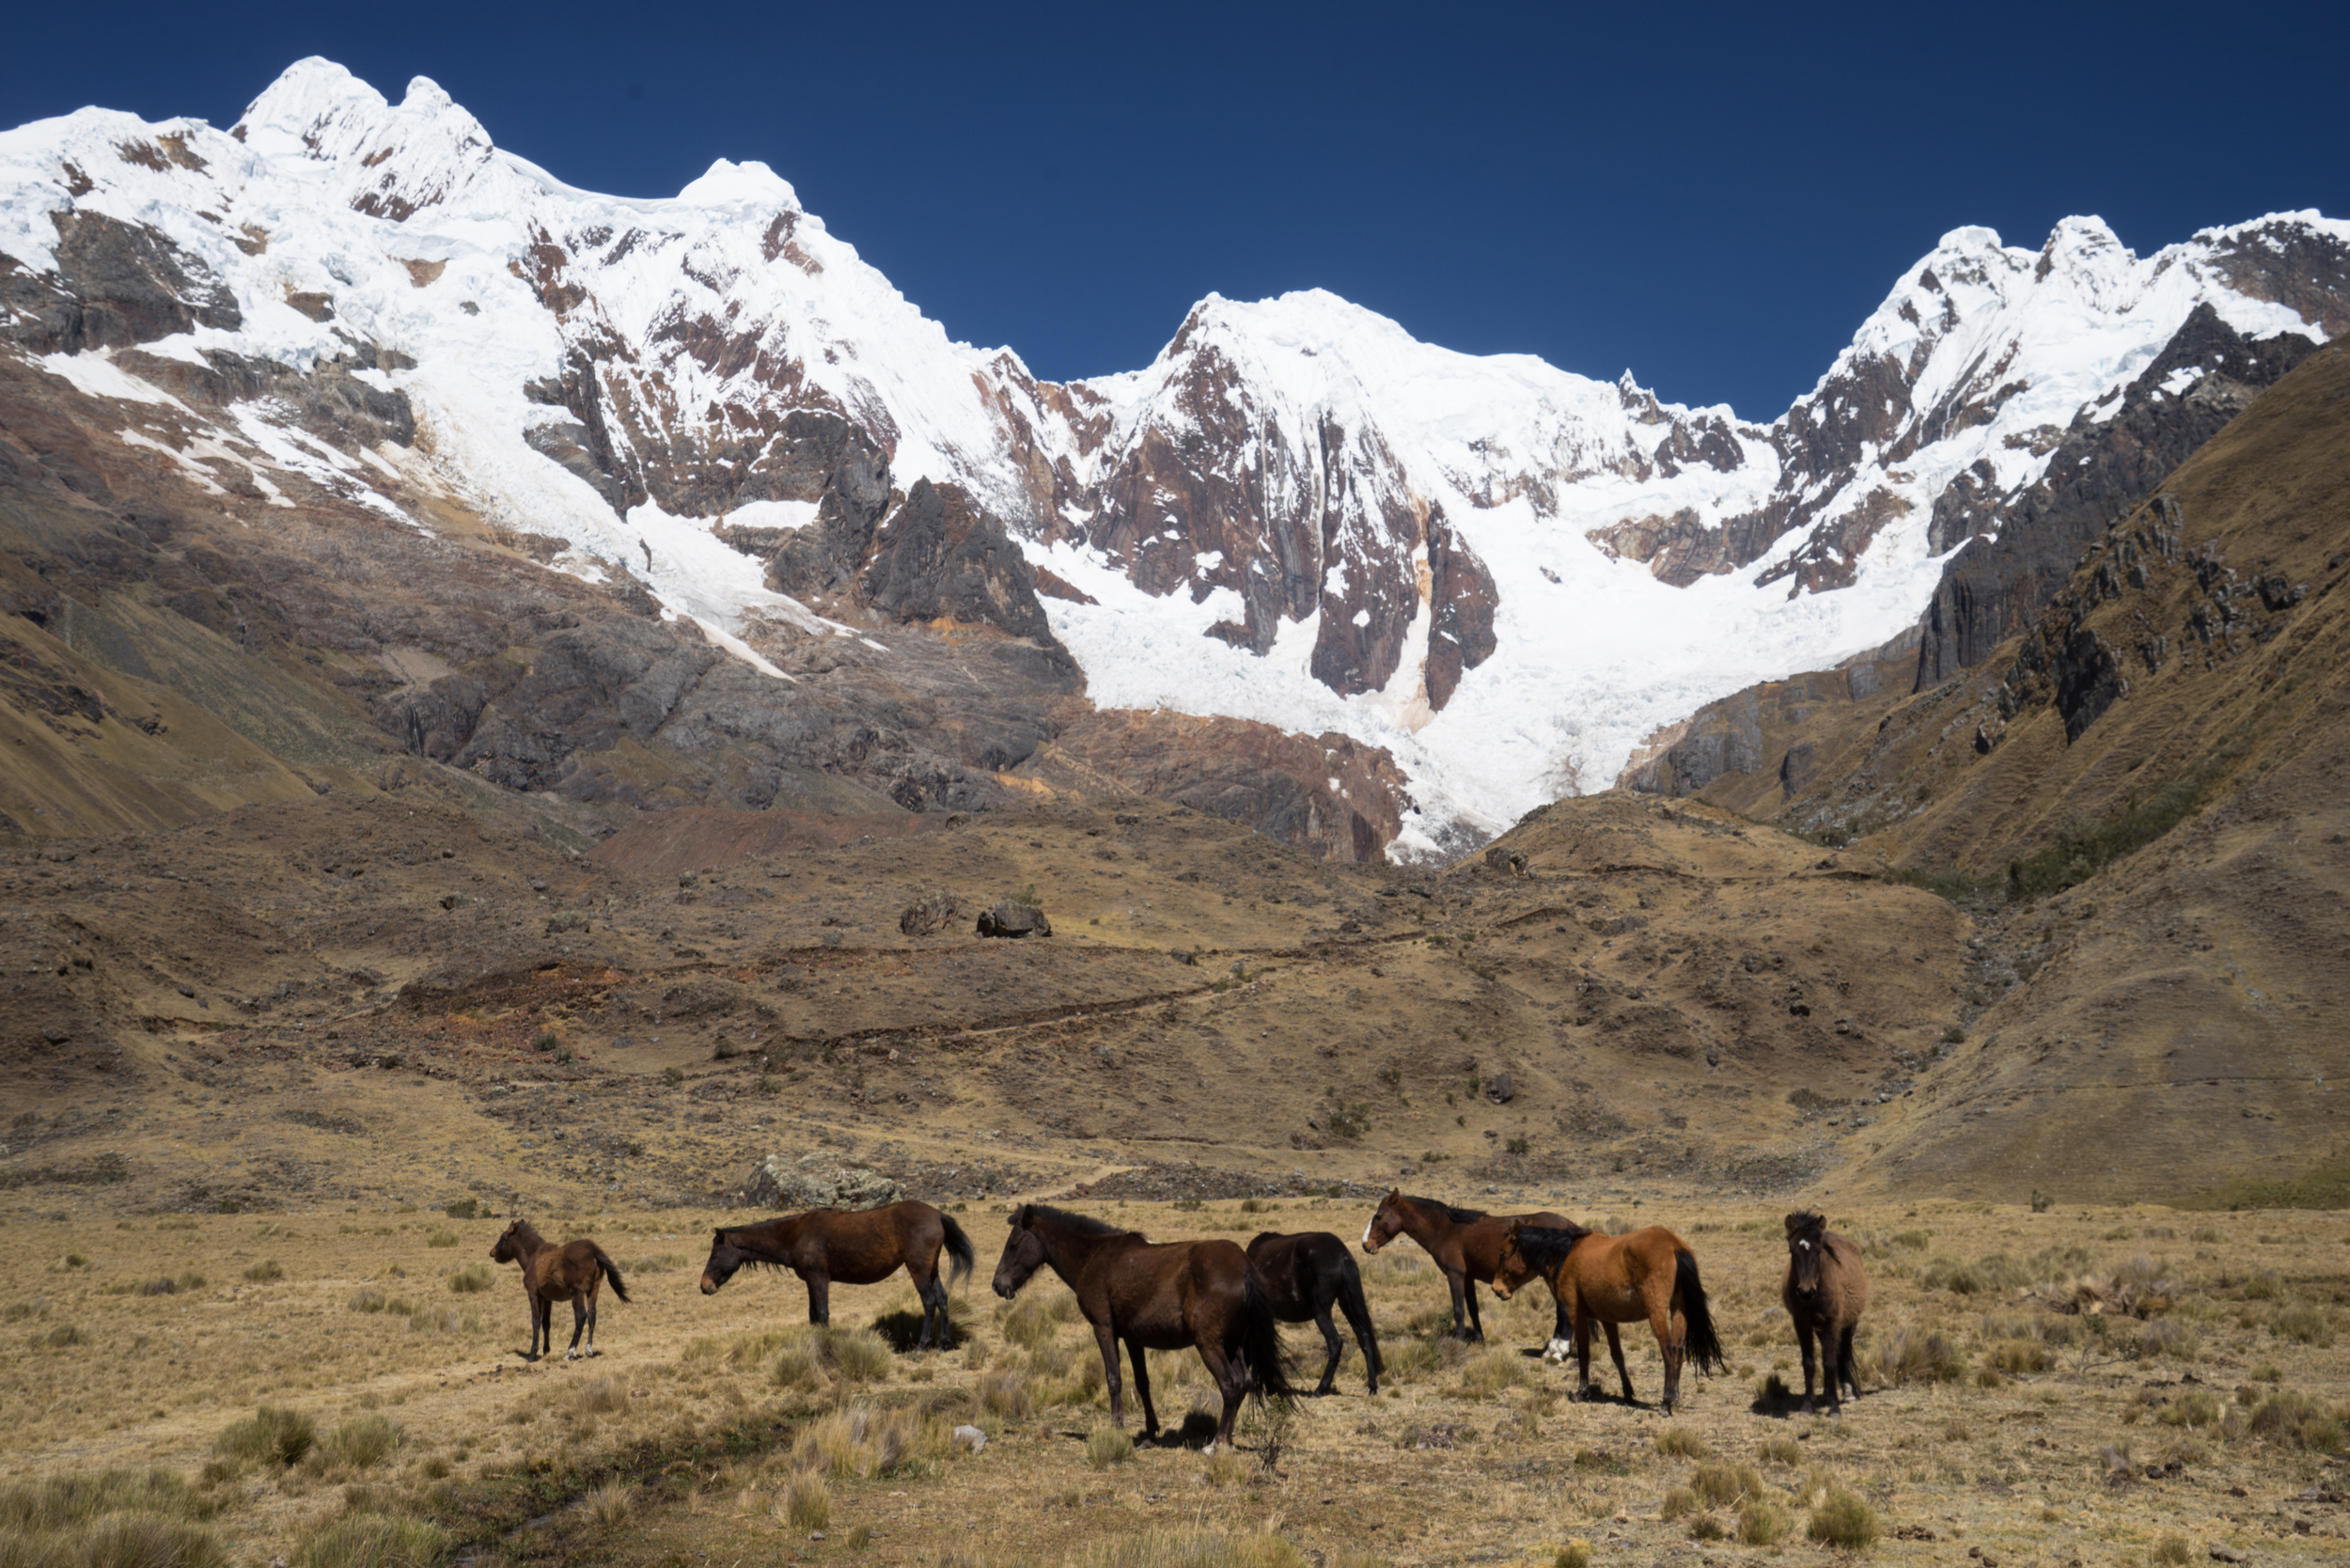 Herd of horse at 4200m altitude